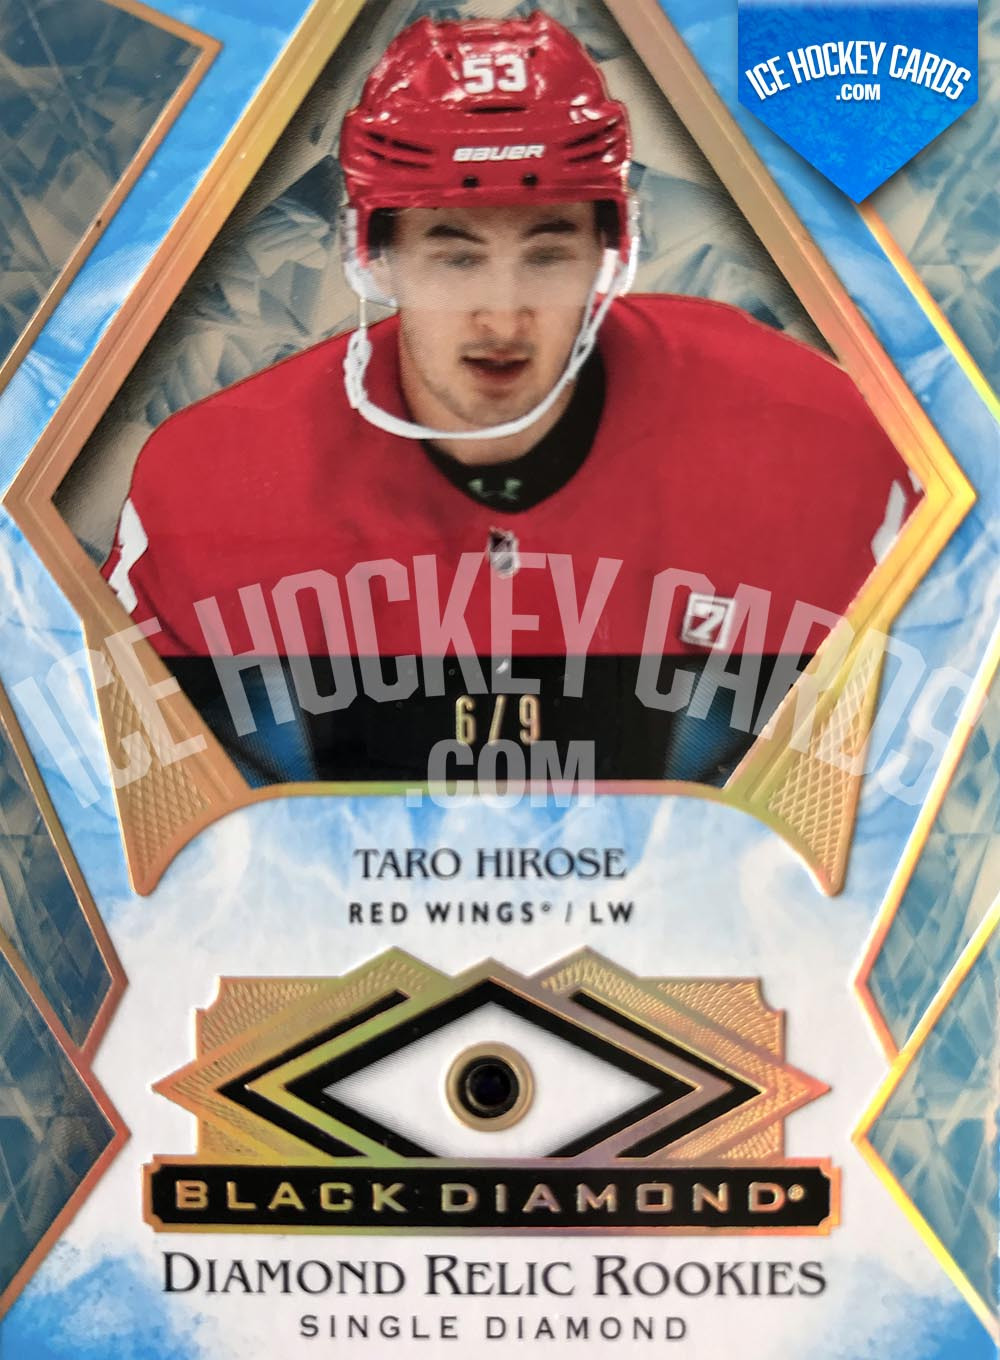 Upper Deck - Black Diamond 2019-20 - Taro Hirose Single Diamond Relic Rookies CDD Exclusive # to 9 SUPER RARE